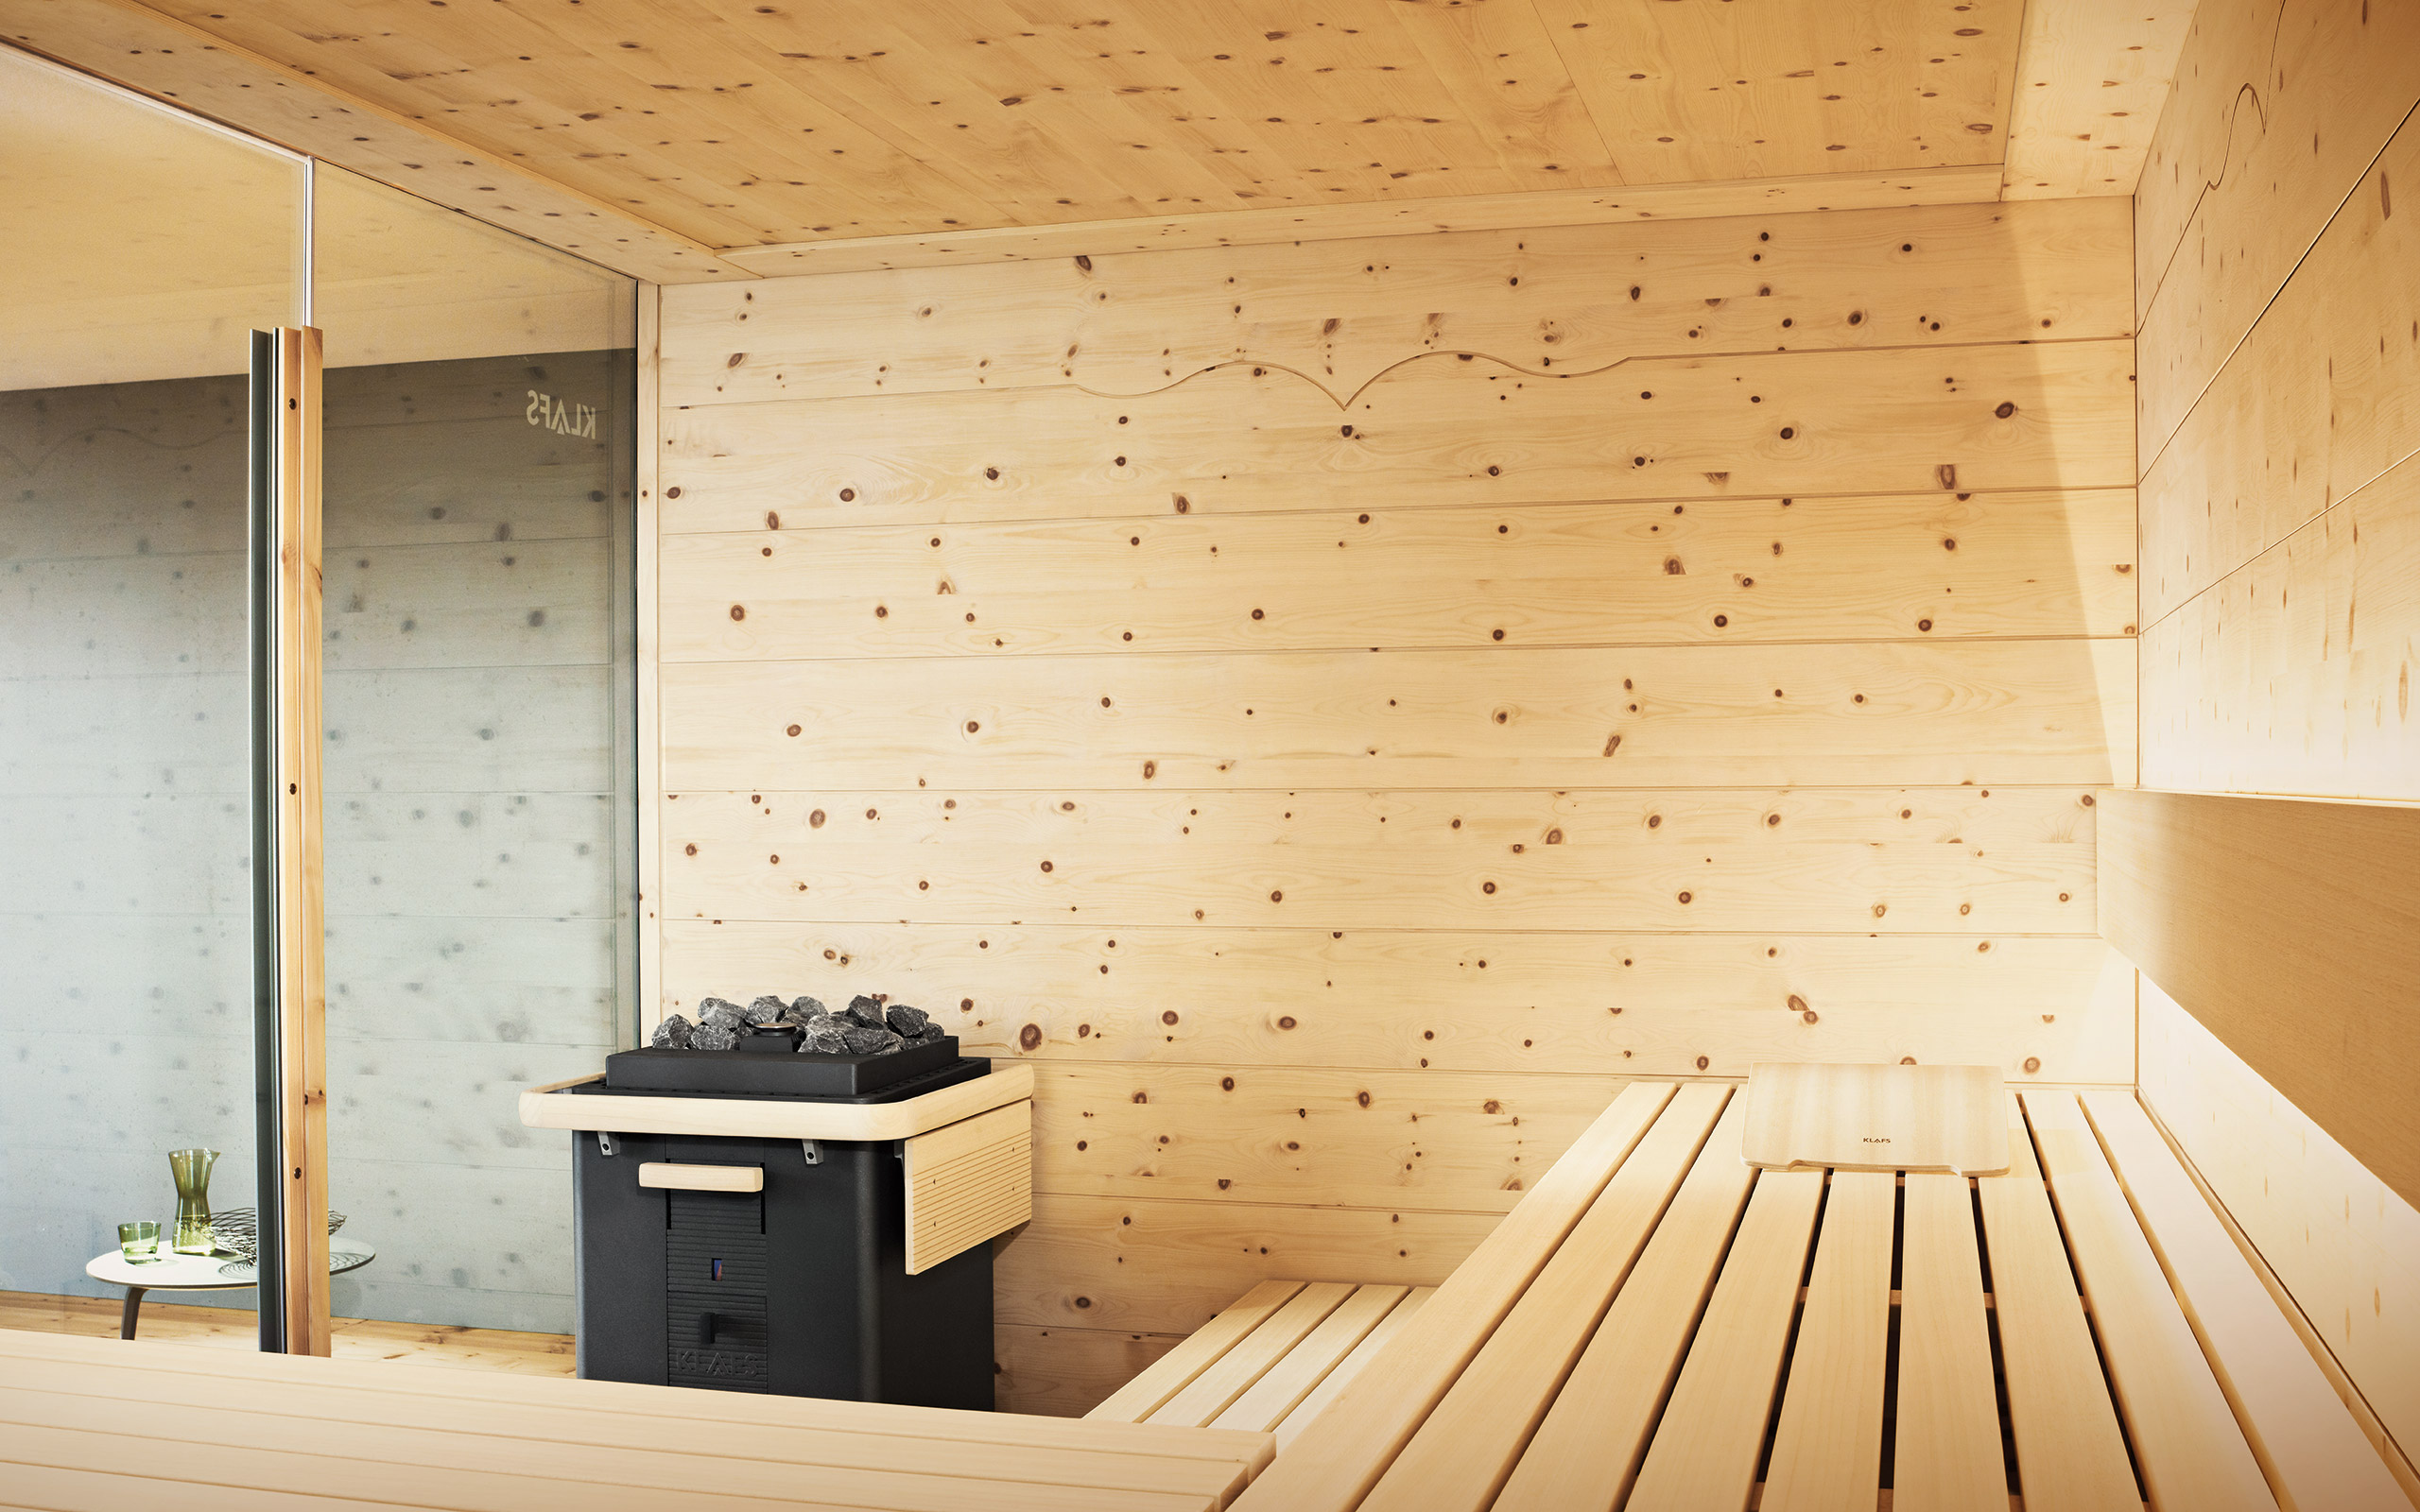 klafs sauna chalet alpenl ndischer charme. Black Bedroom Furniture Sets. Home Design Ideas